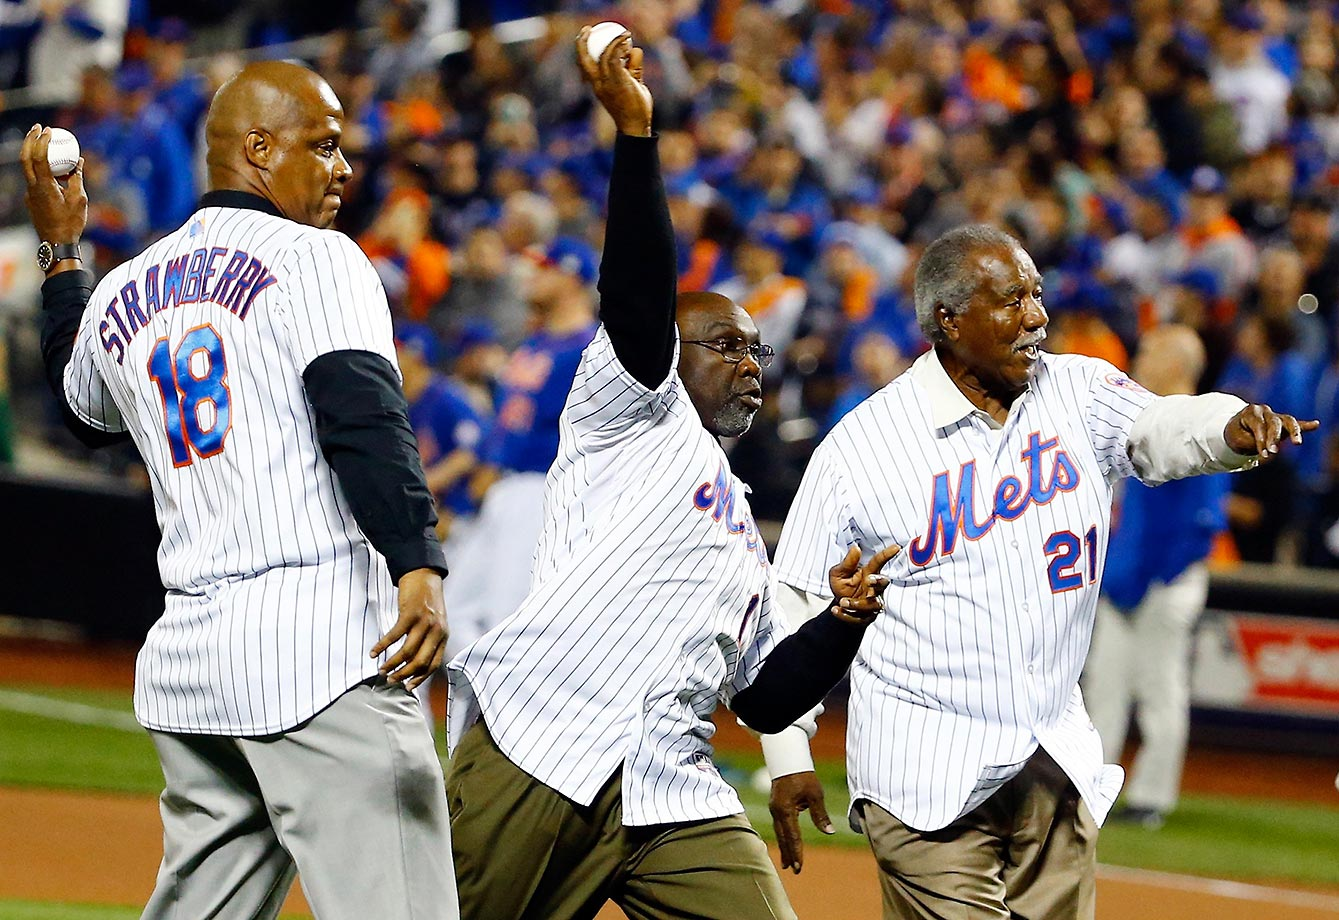 Let's see if the catcher can catch three balls at once. New York Mets former players Darryl Strawberry, Mookie Wilson and Cleon Jones throw out the ceremonial first pitch before Game 5 of the World Series.